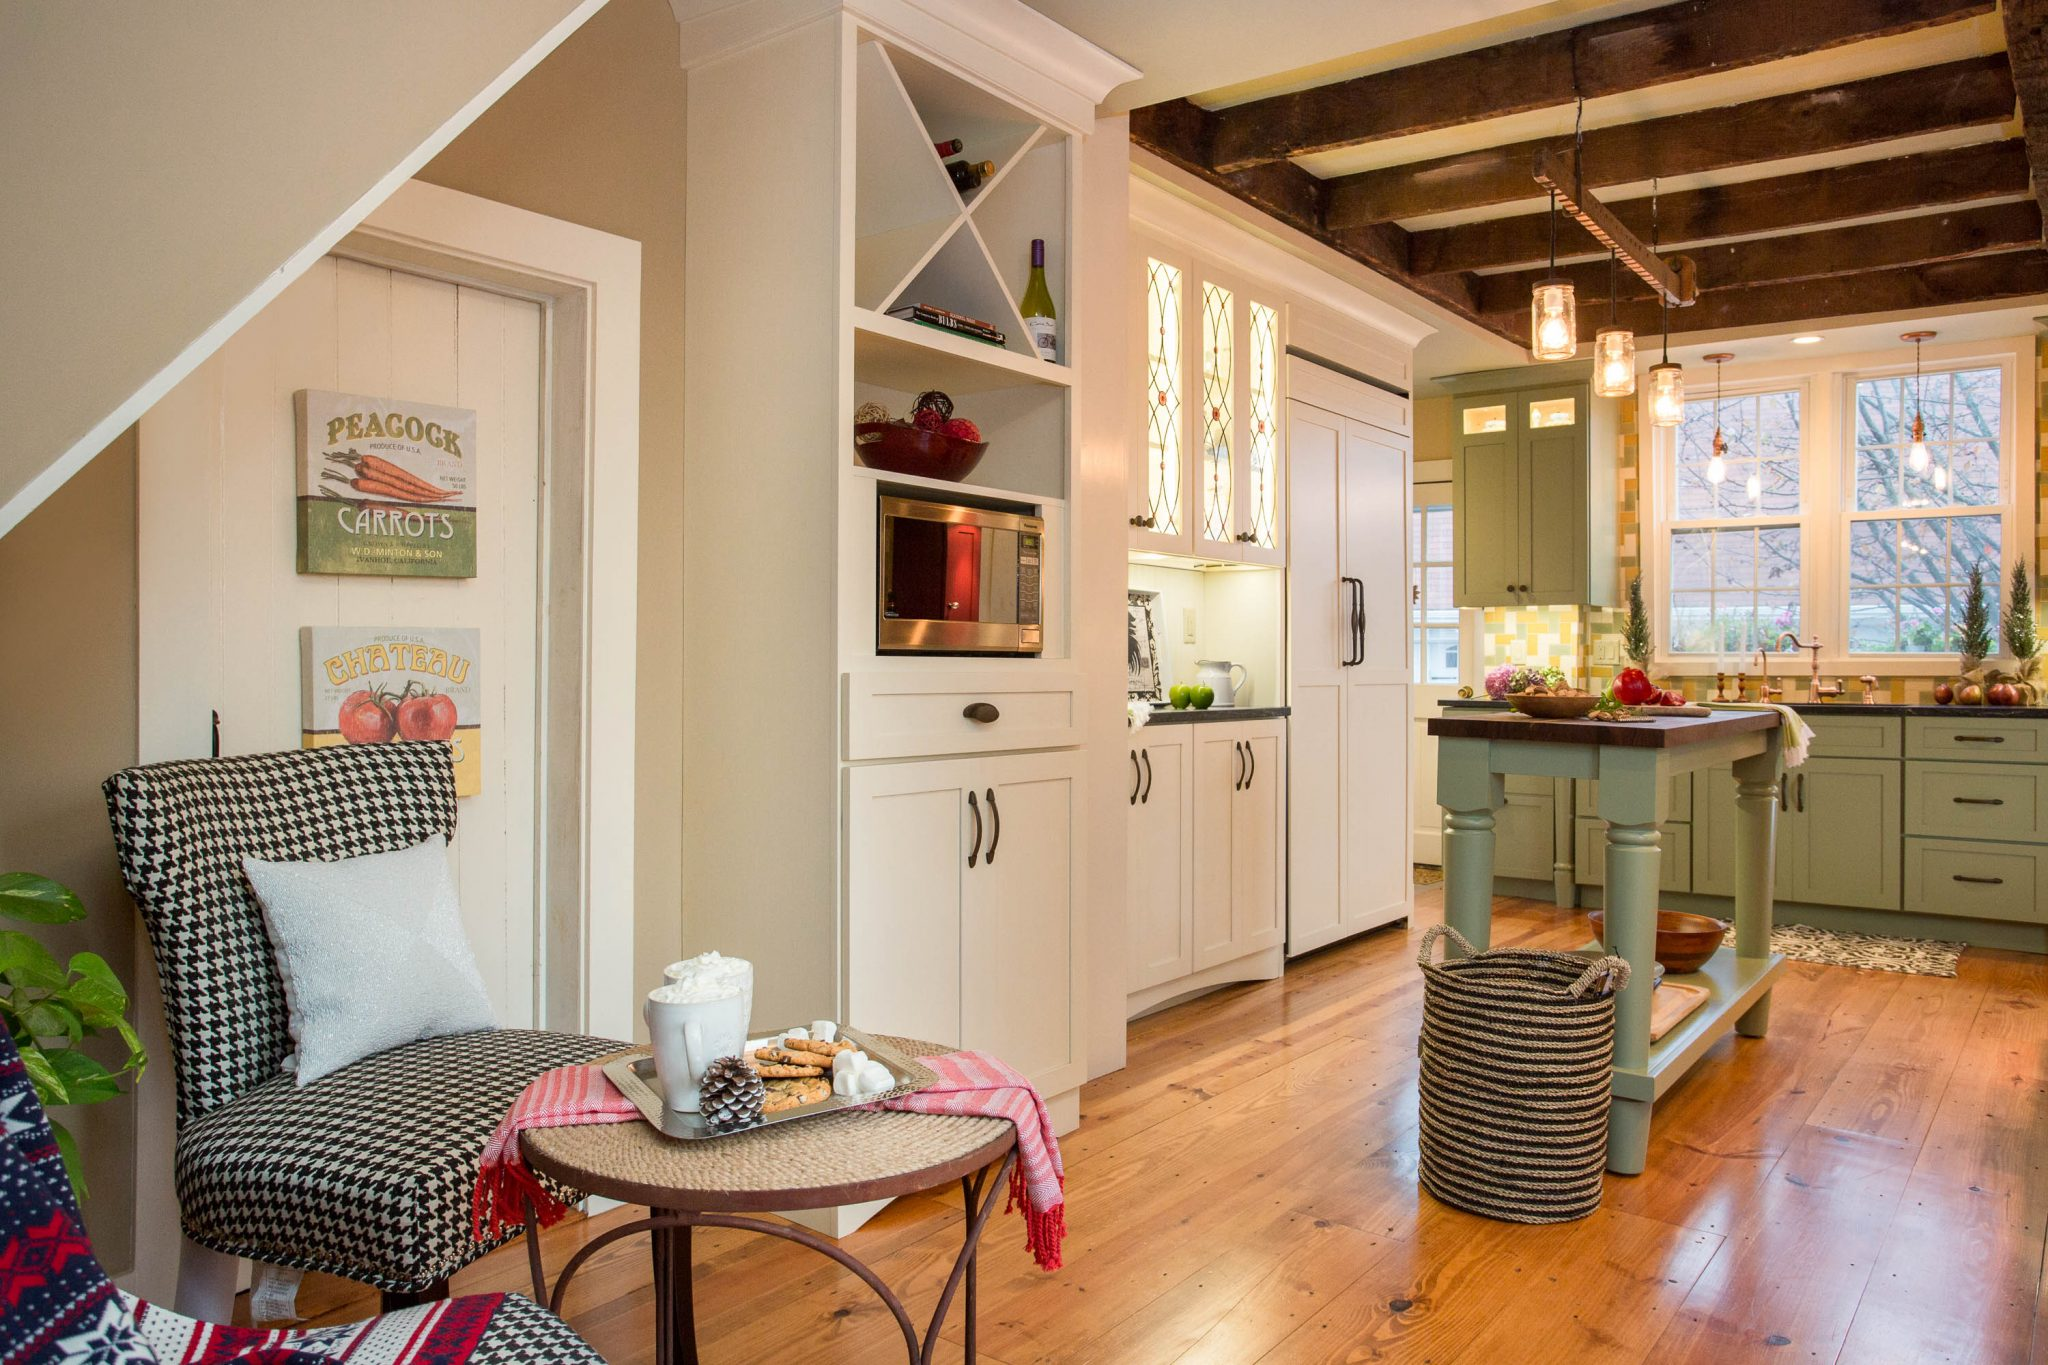 1800s Historical Farmhouse New England Design Elements